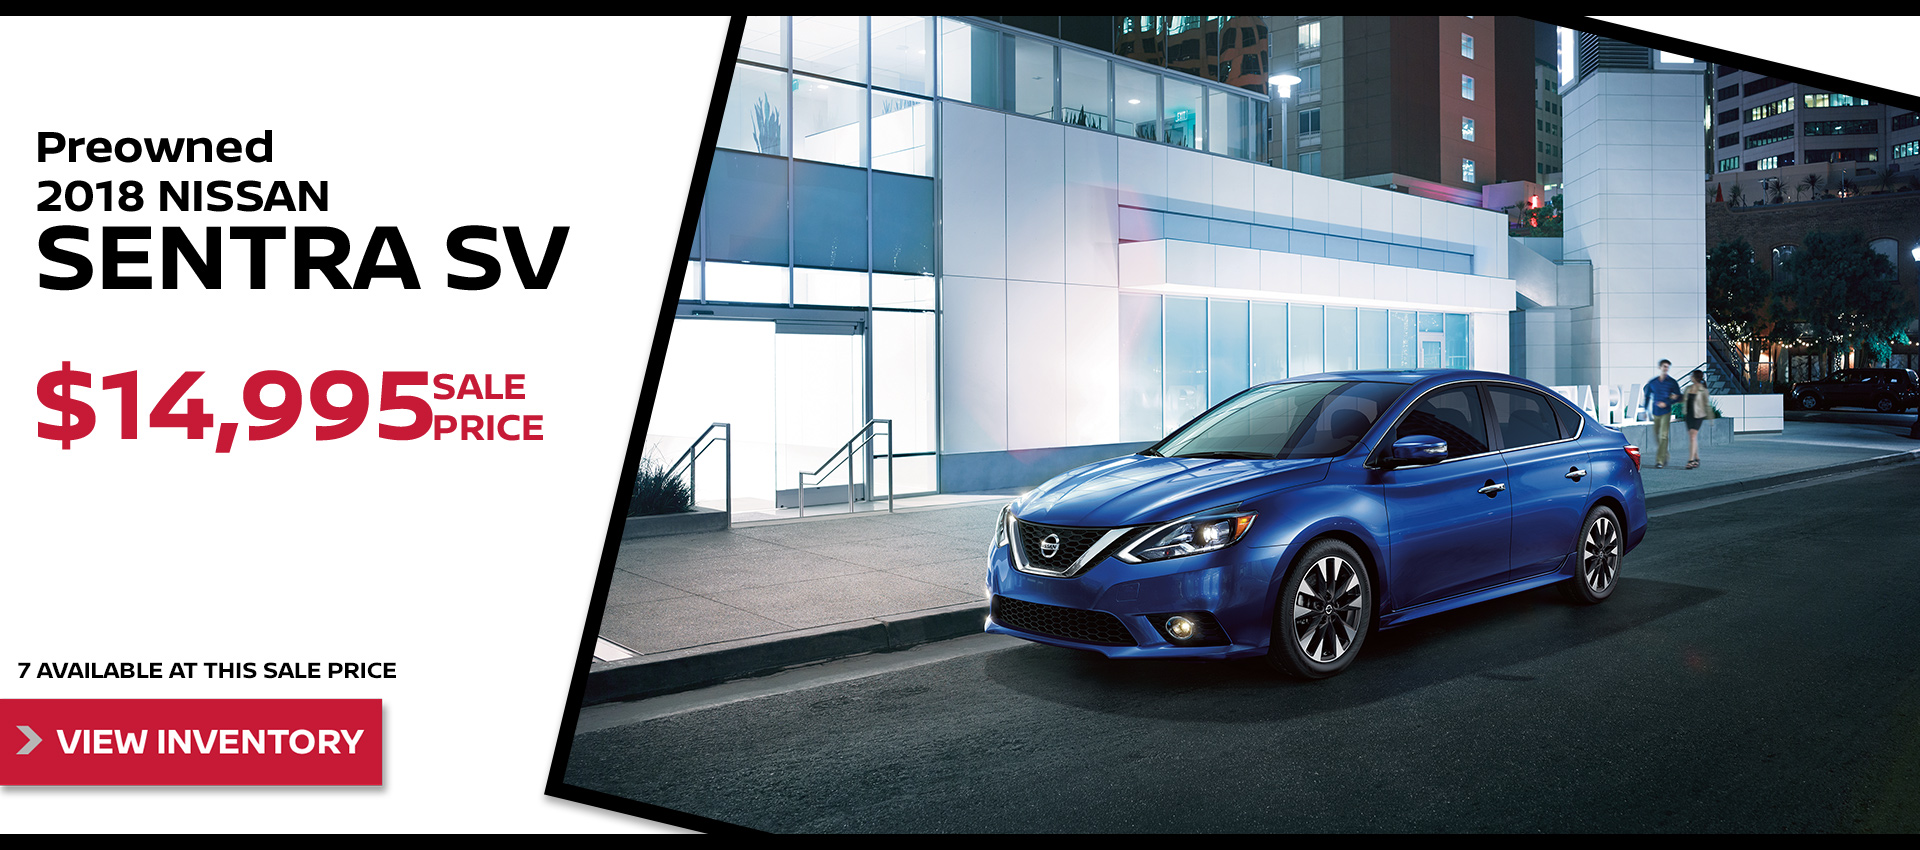 Mossy Nissan - PreOwned Sentra HP